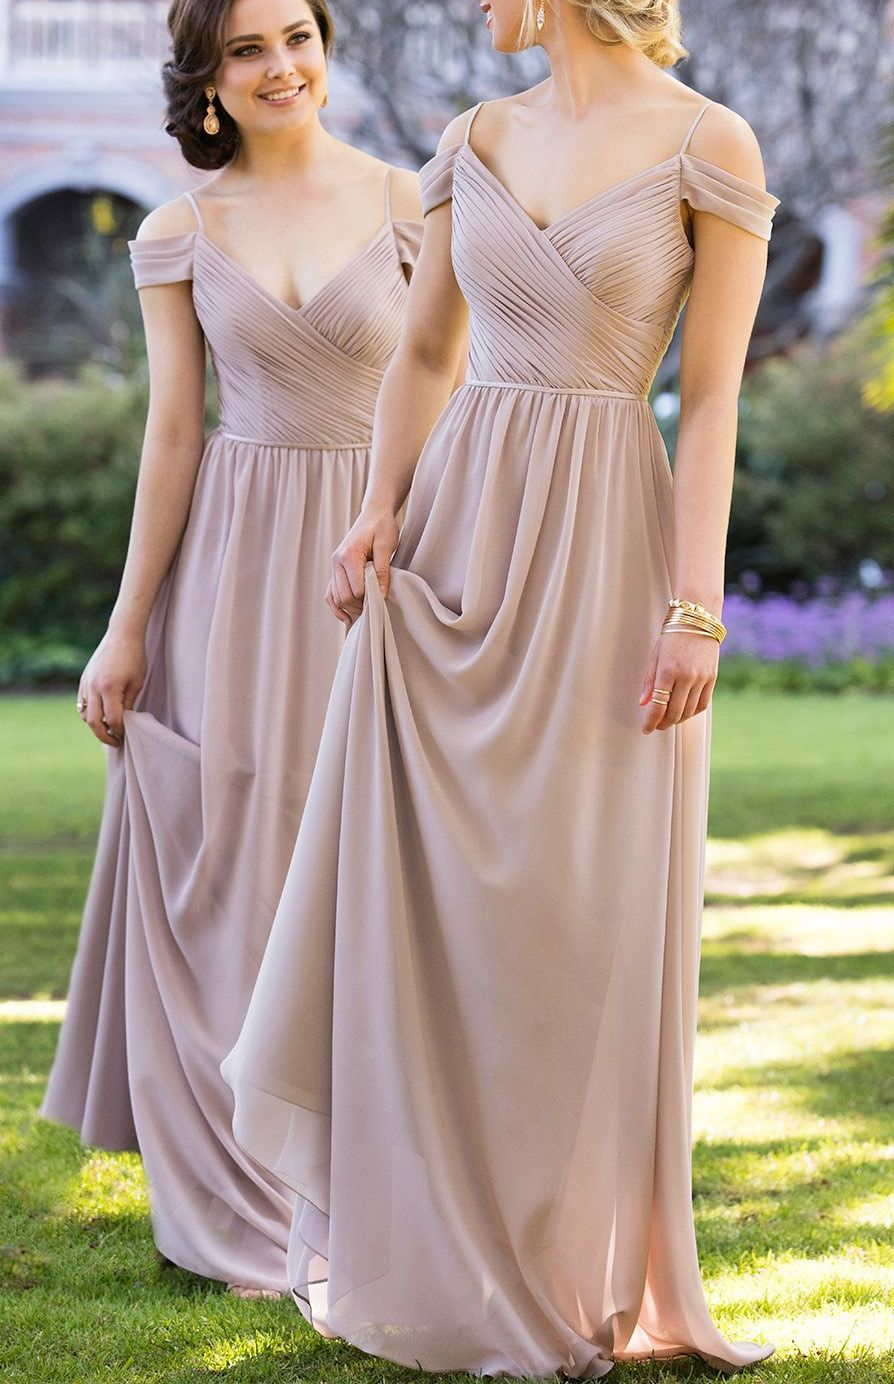 Grey Bridesmaid Dresses Long With Ruffles Floor Length Straps Online Wf02g48 840